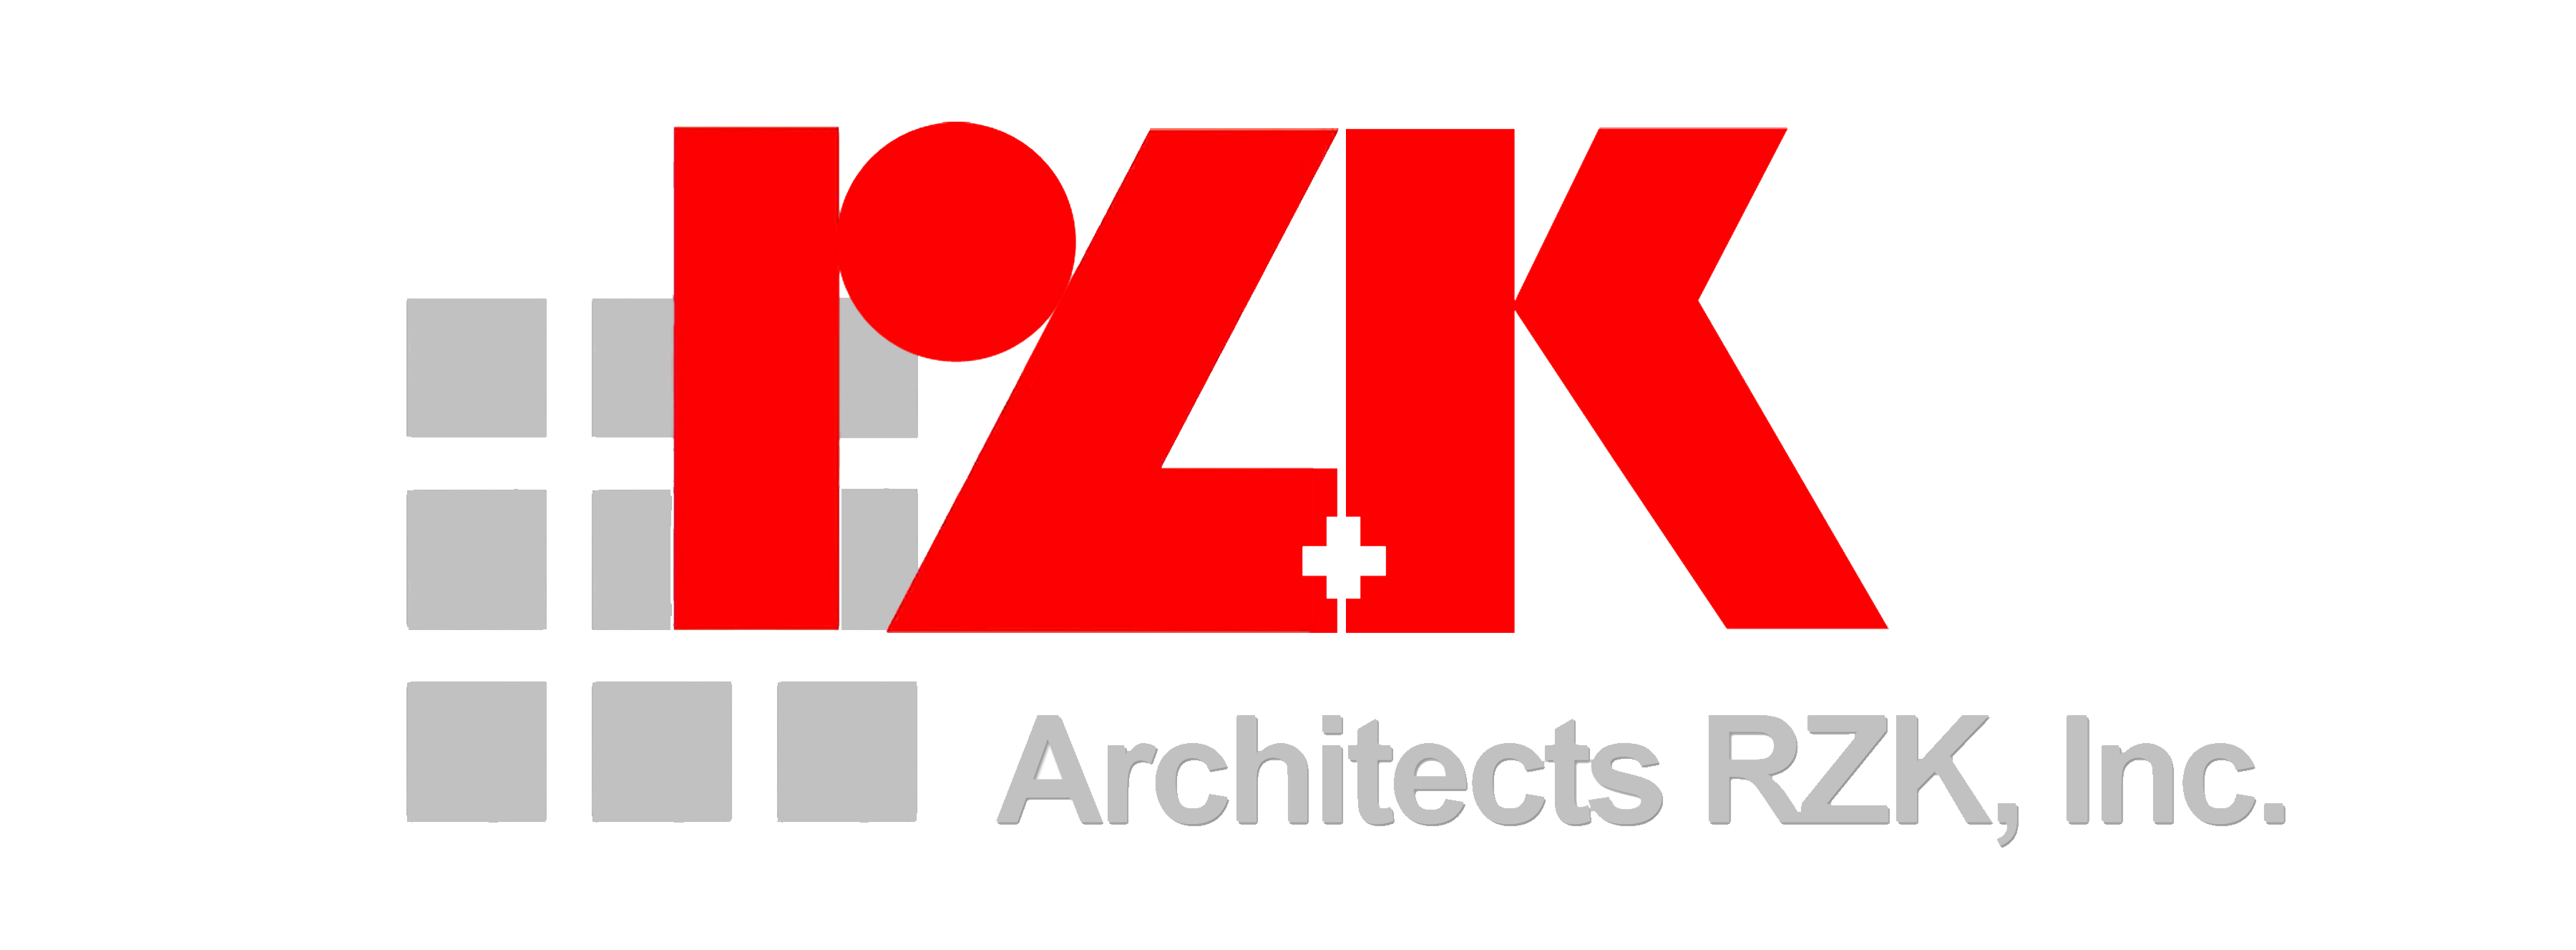 Architects RZK